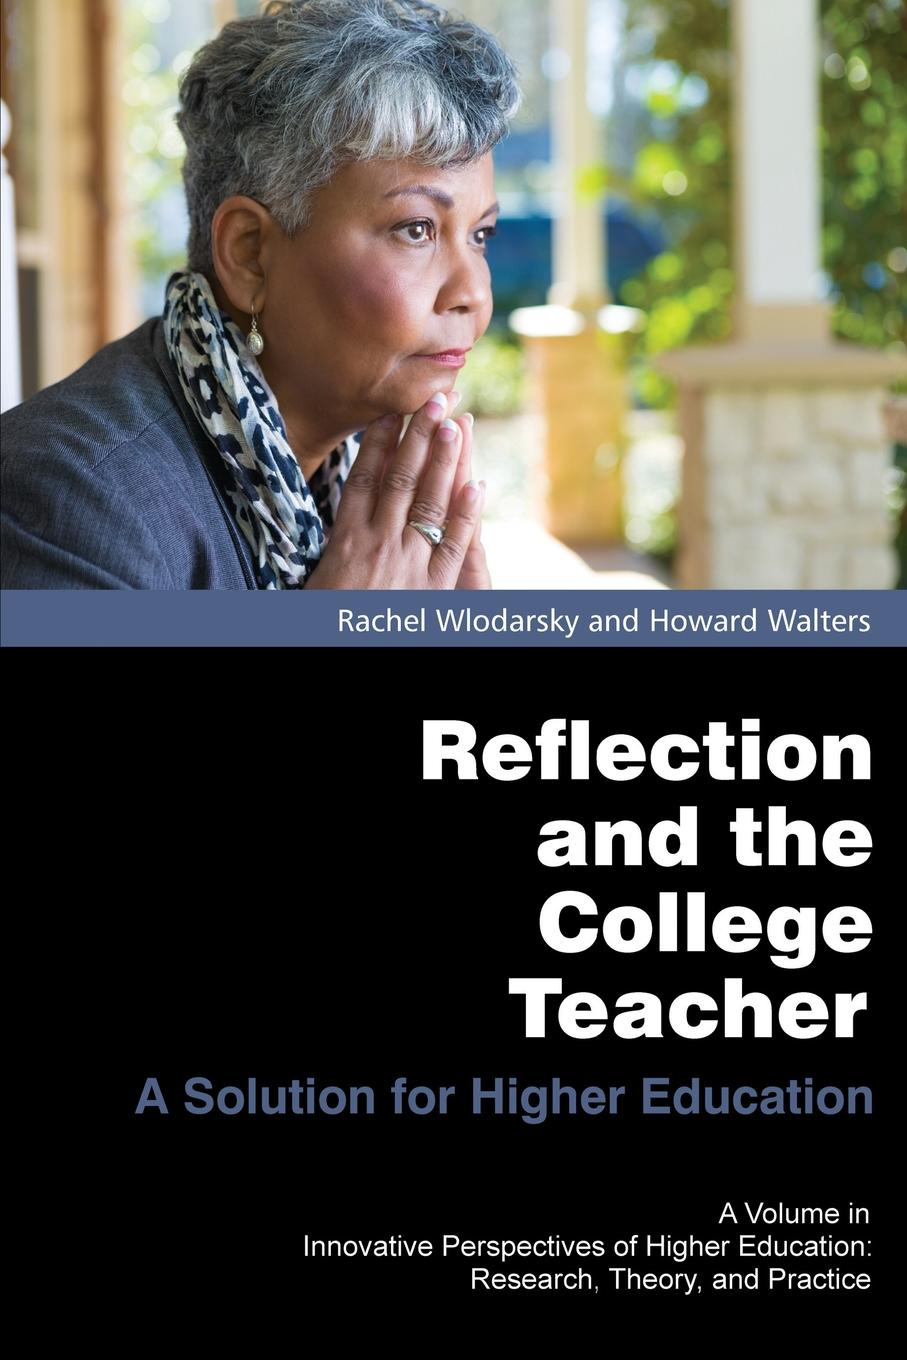 Rachel Wlodarsky, Howard Walters Reflection and the College Teacher. A Solution for Higher Education reflective education